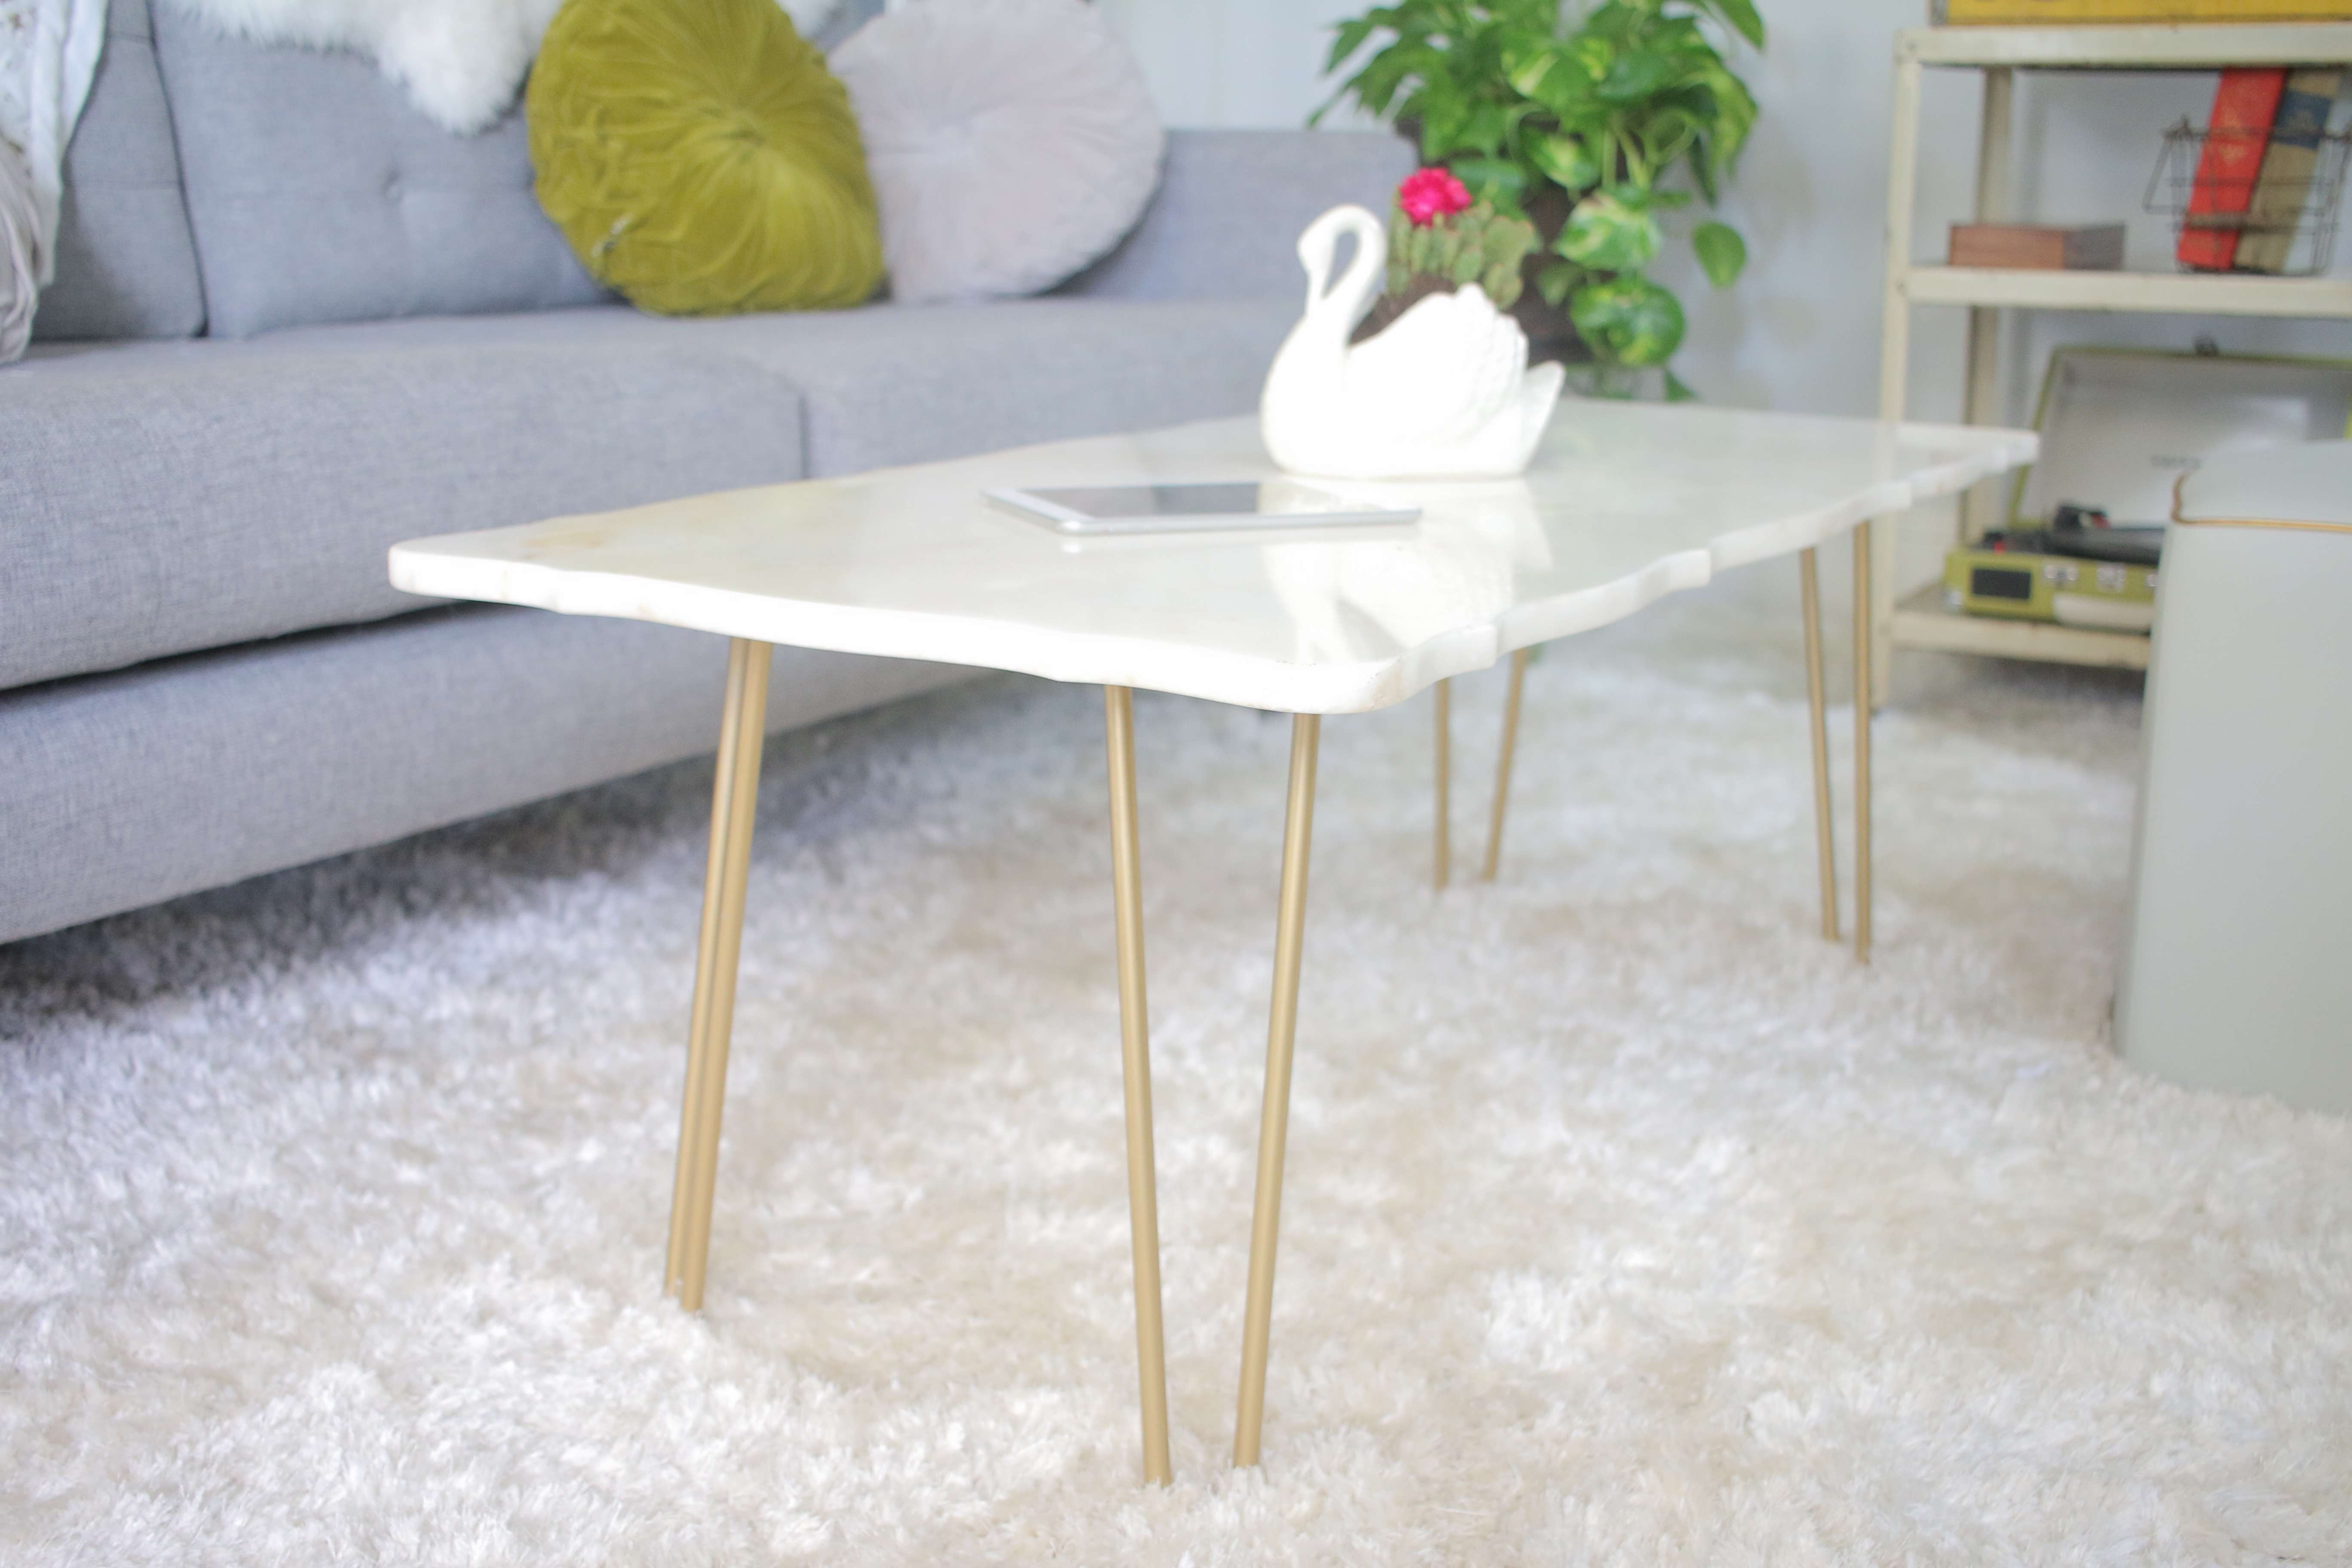 Coffee Table : Sensationalle Coffee Table Photos Ideas Neri Hu Pertaining To Most Current Small Marble Coffee Tables (View 18 of 20)